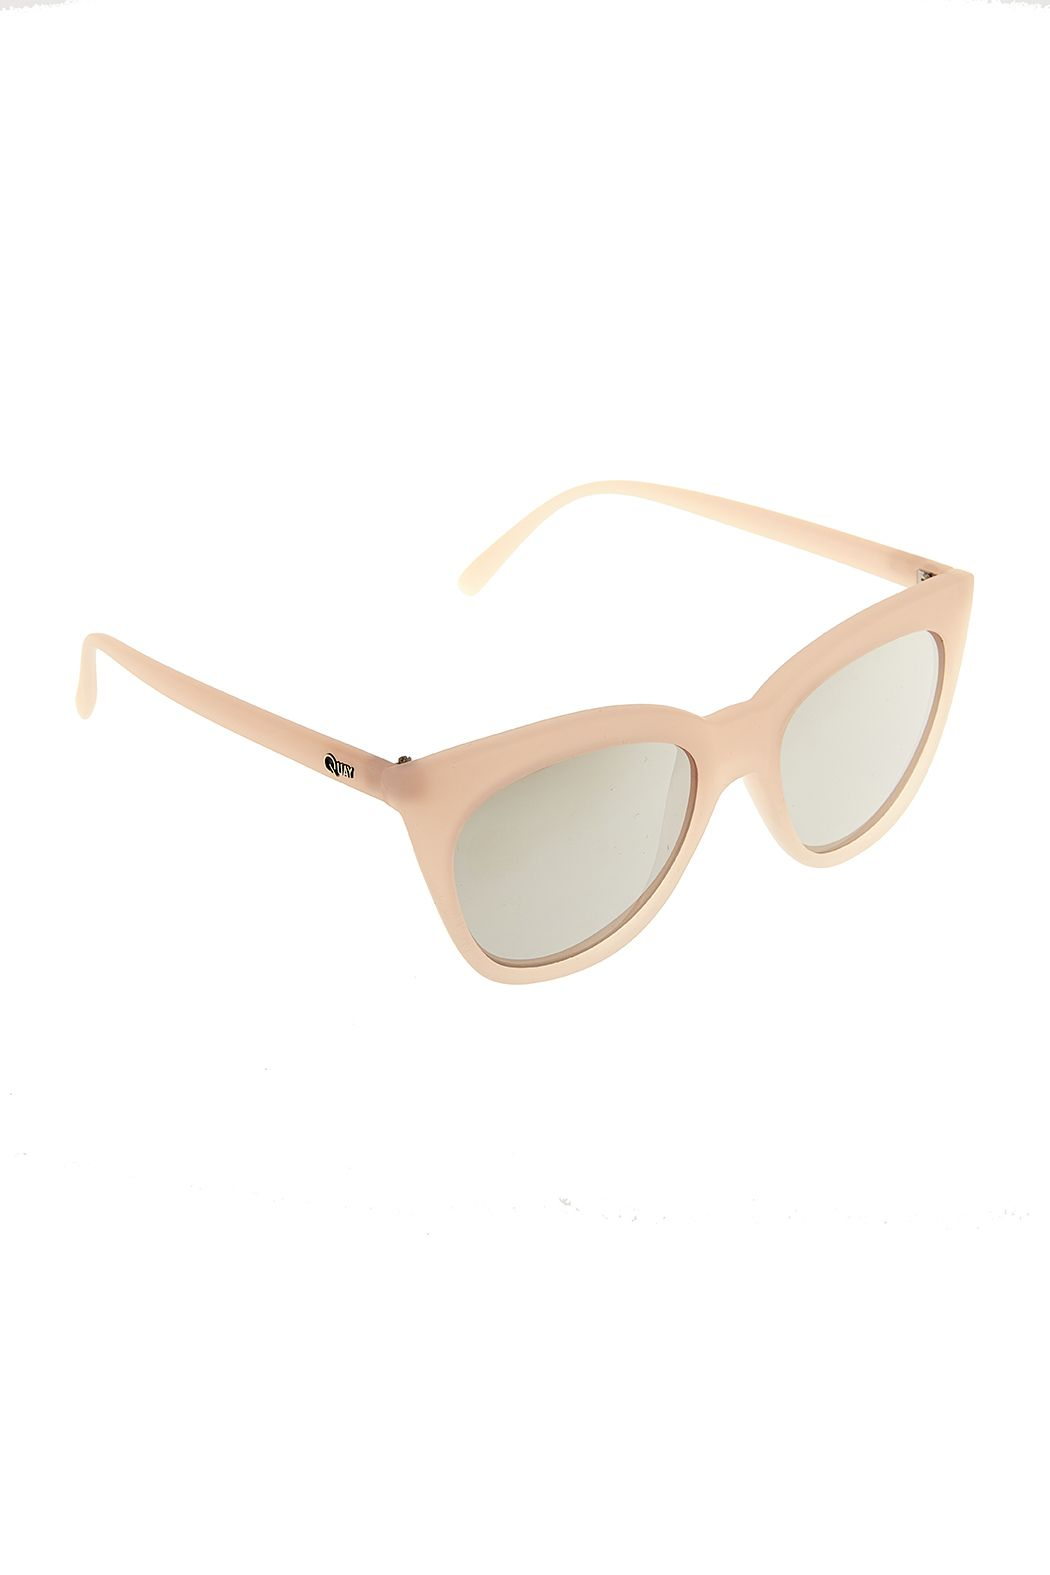 b2126b2b3e Isabell Sunglasses by Quay Australia. Pink sunnies with silver mirror  lenses. 100% UV Protection and soft case included. Isabell Pink Sunglasses  by Quay ...